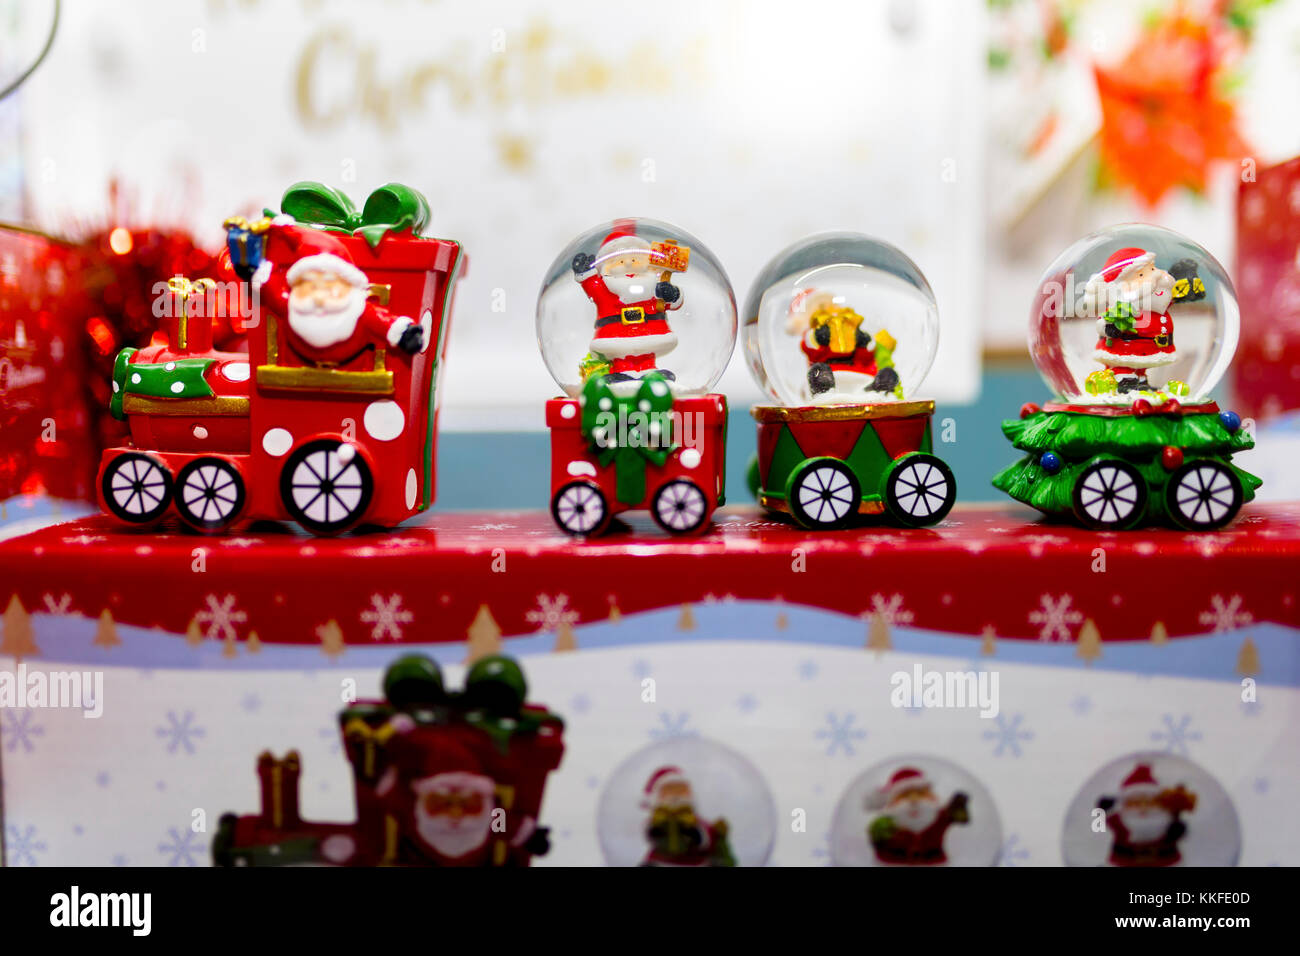 snow globe santa claus christmas stockfotos snow globe santa claus christmas bilder alamy. Black Bedroom Furniture Sets. Home Design Ideas